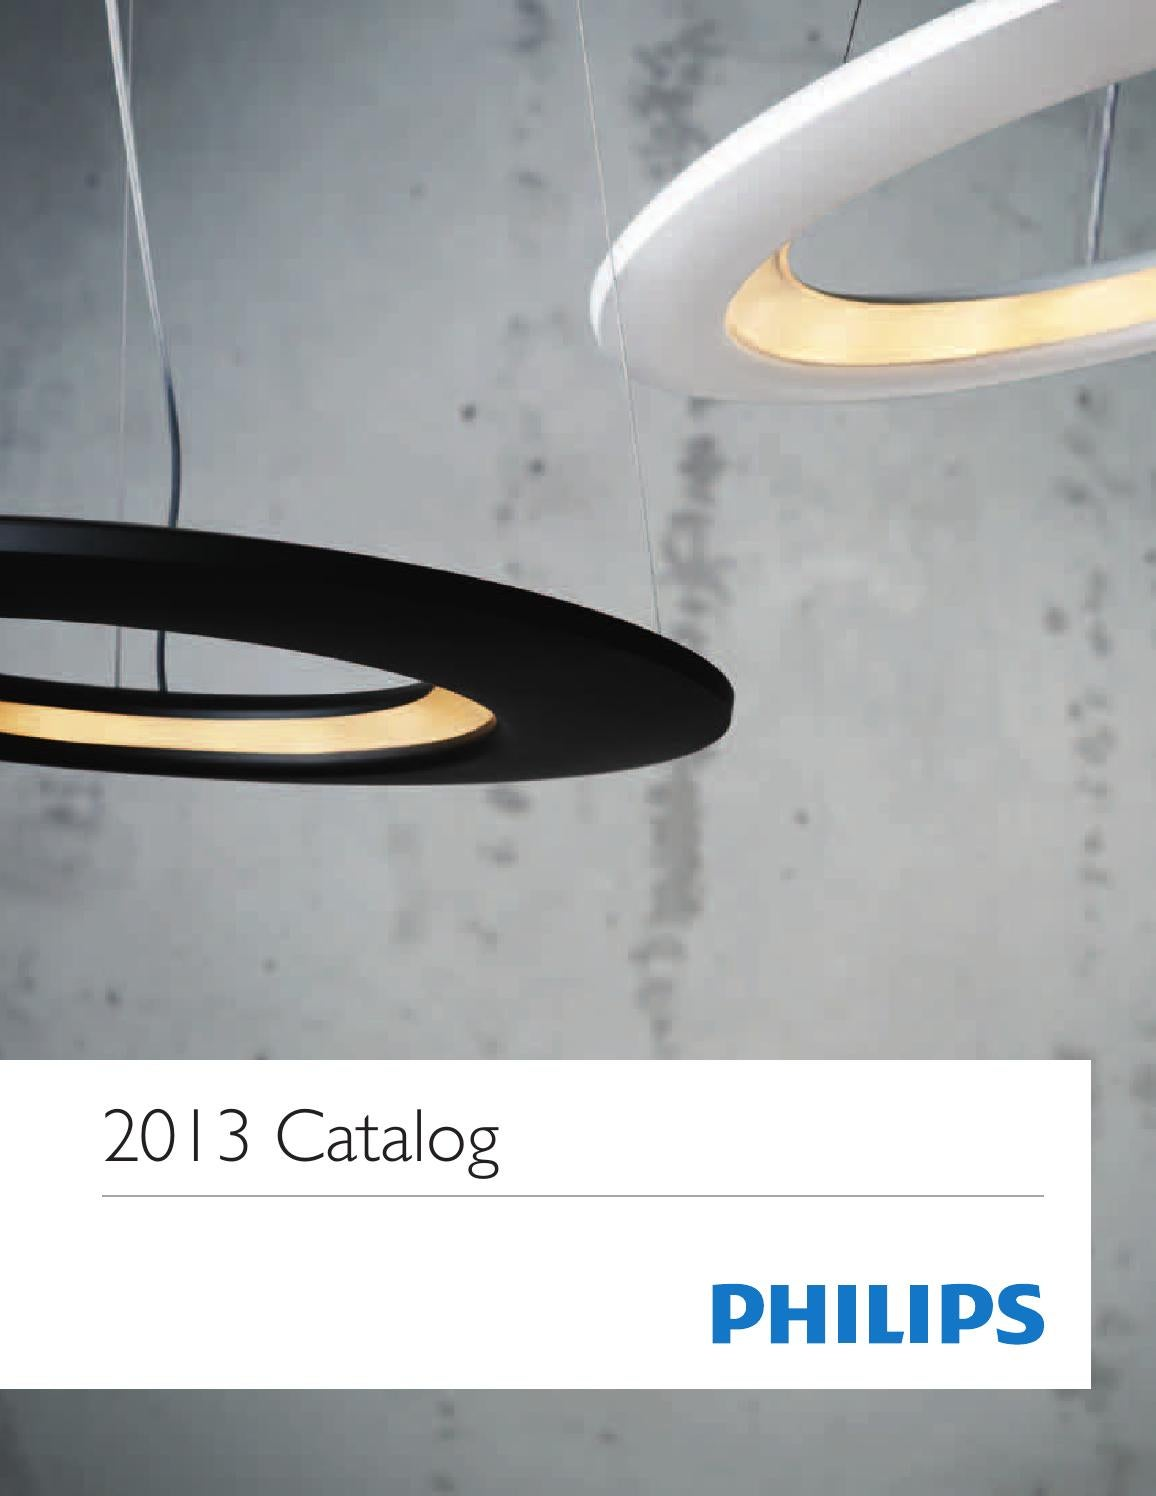 philips 2013catalog by formula3 issuu. Black Bedroom Furniture Sets. Home Design Ideas